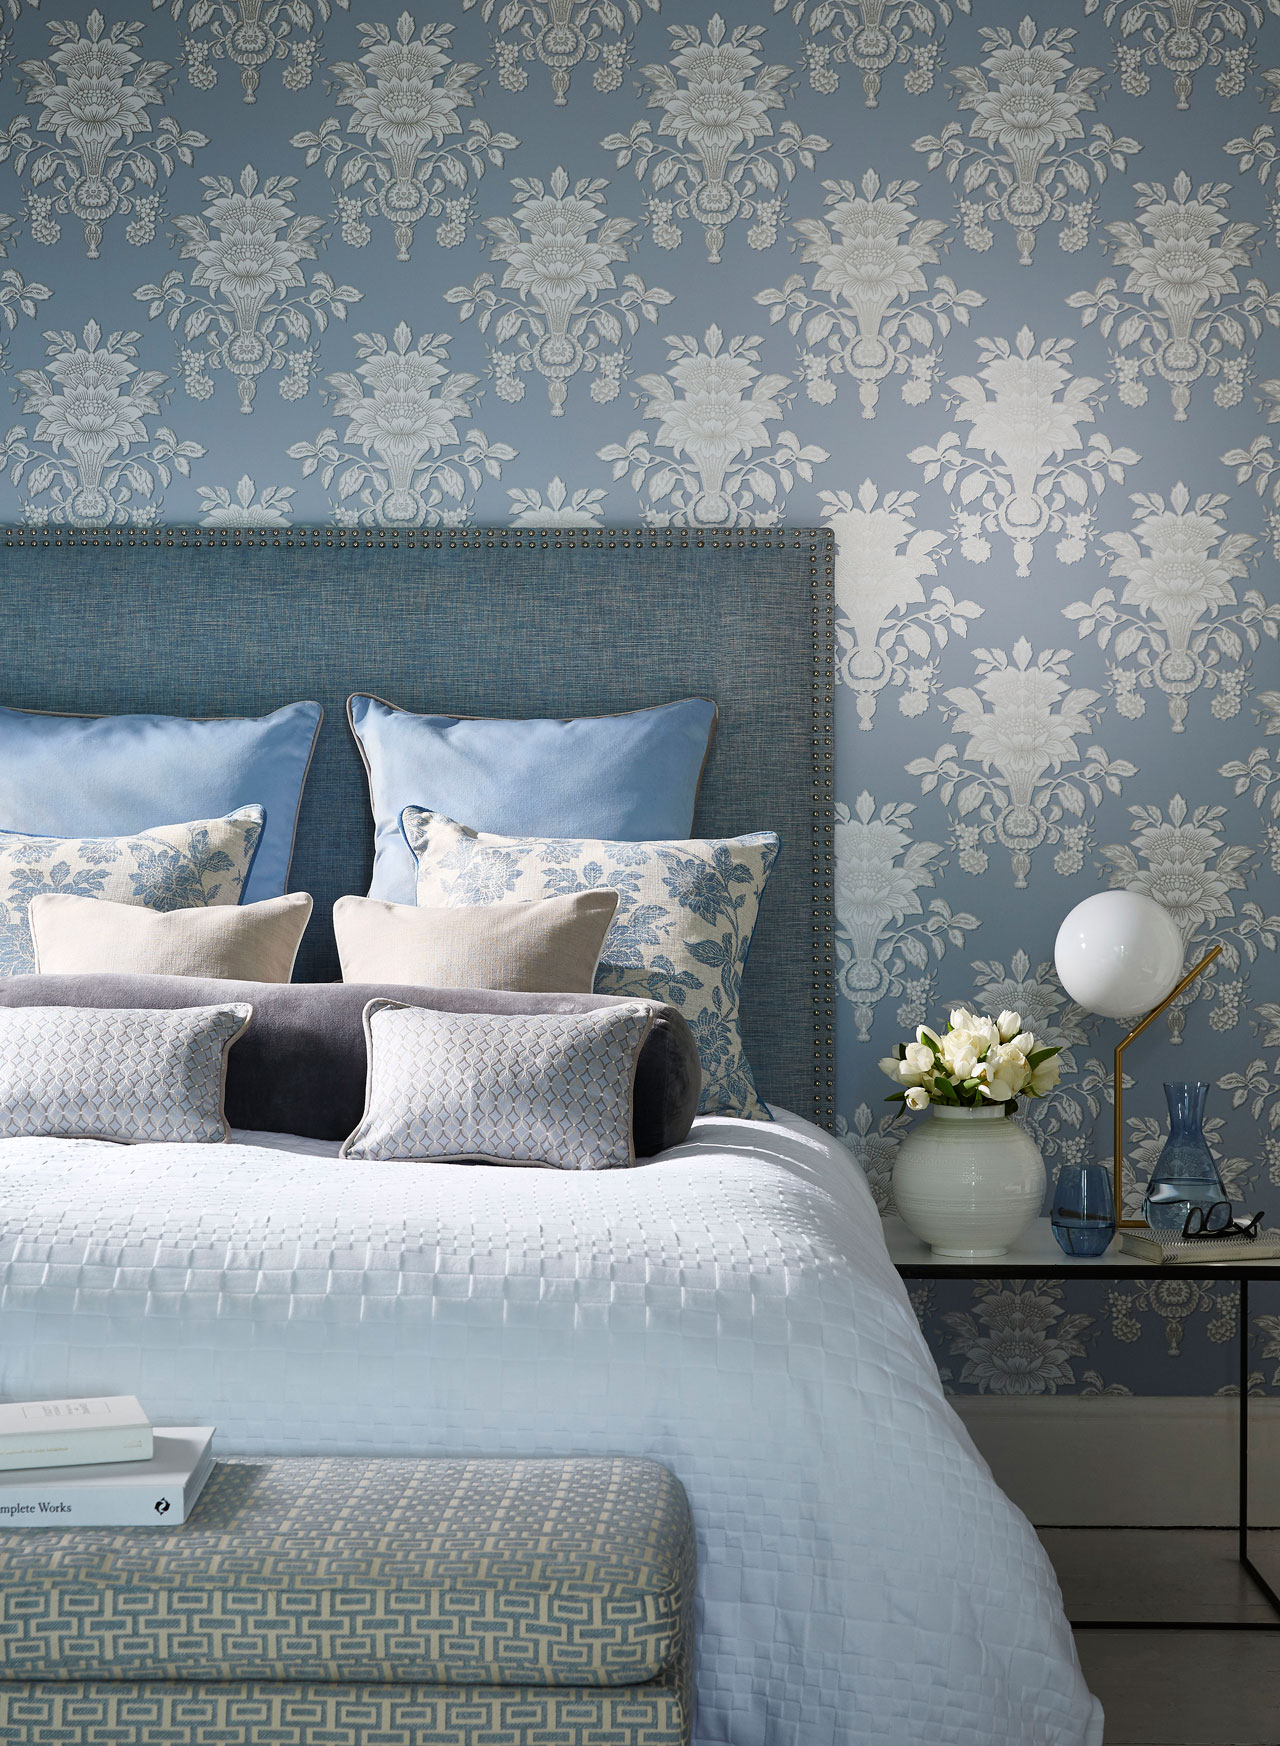 Tonquin-Wallcovering-Bedroom.jpg